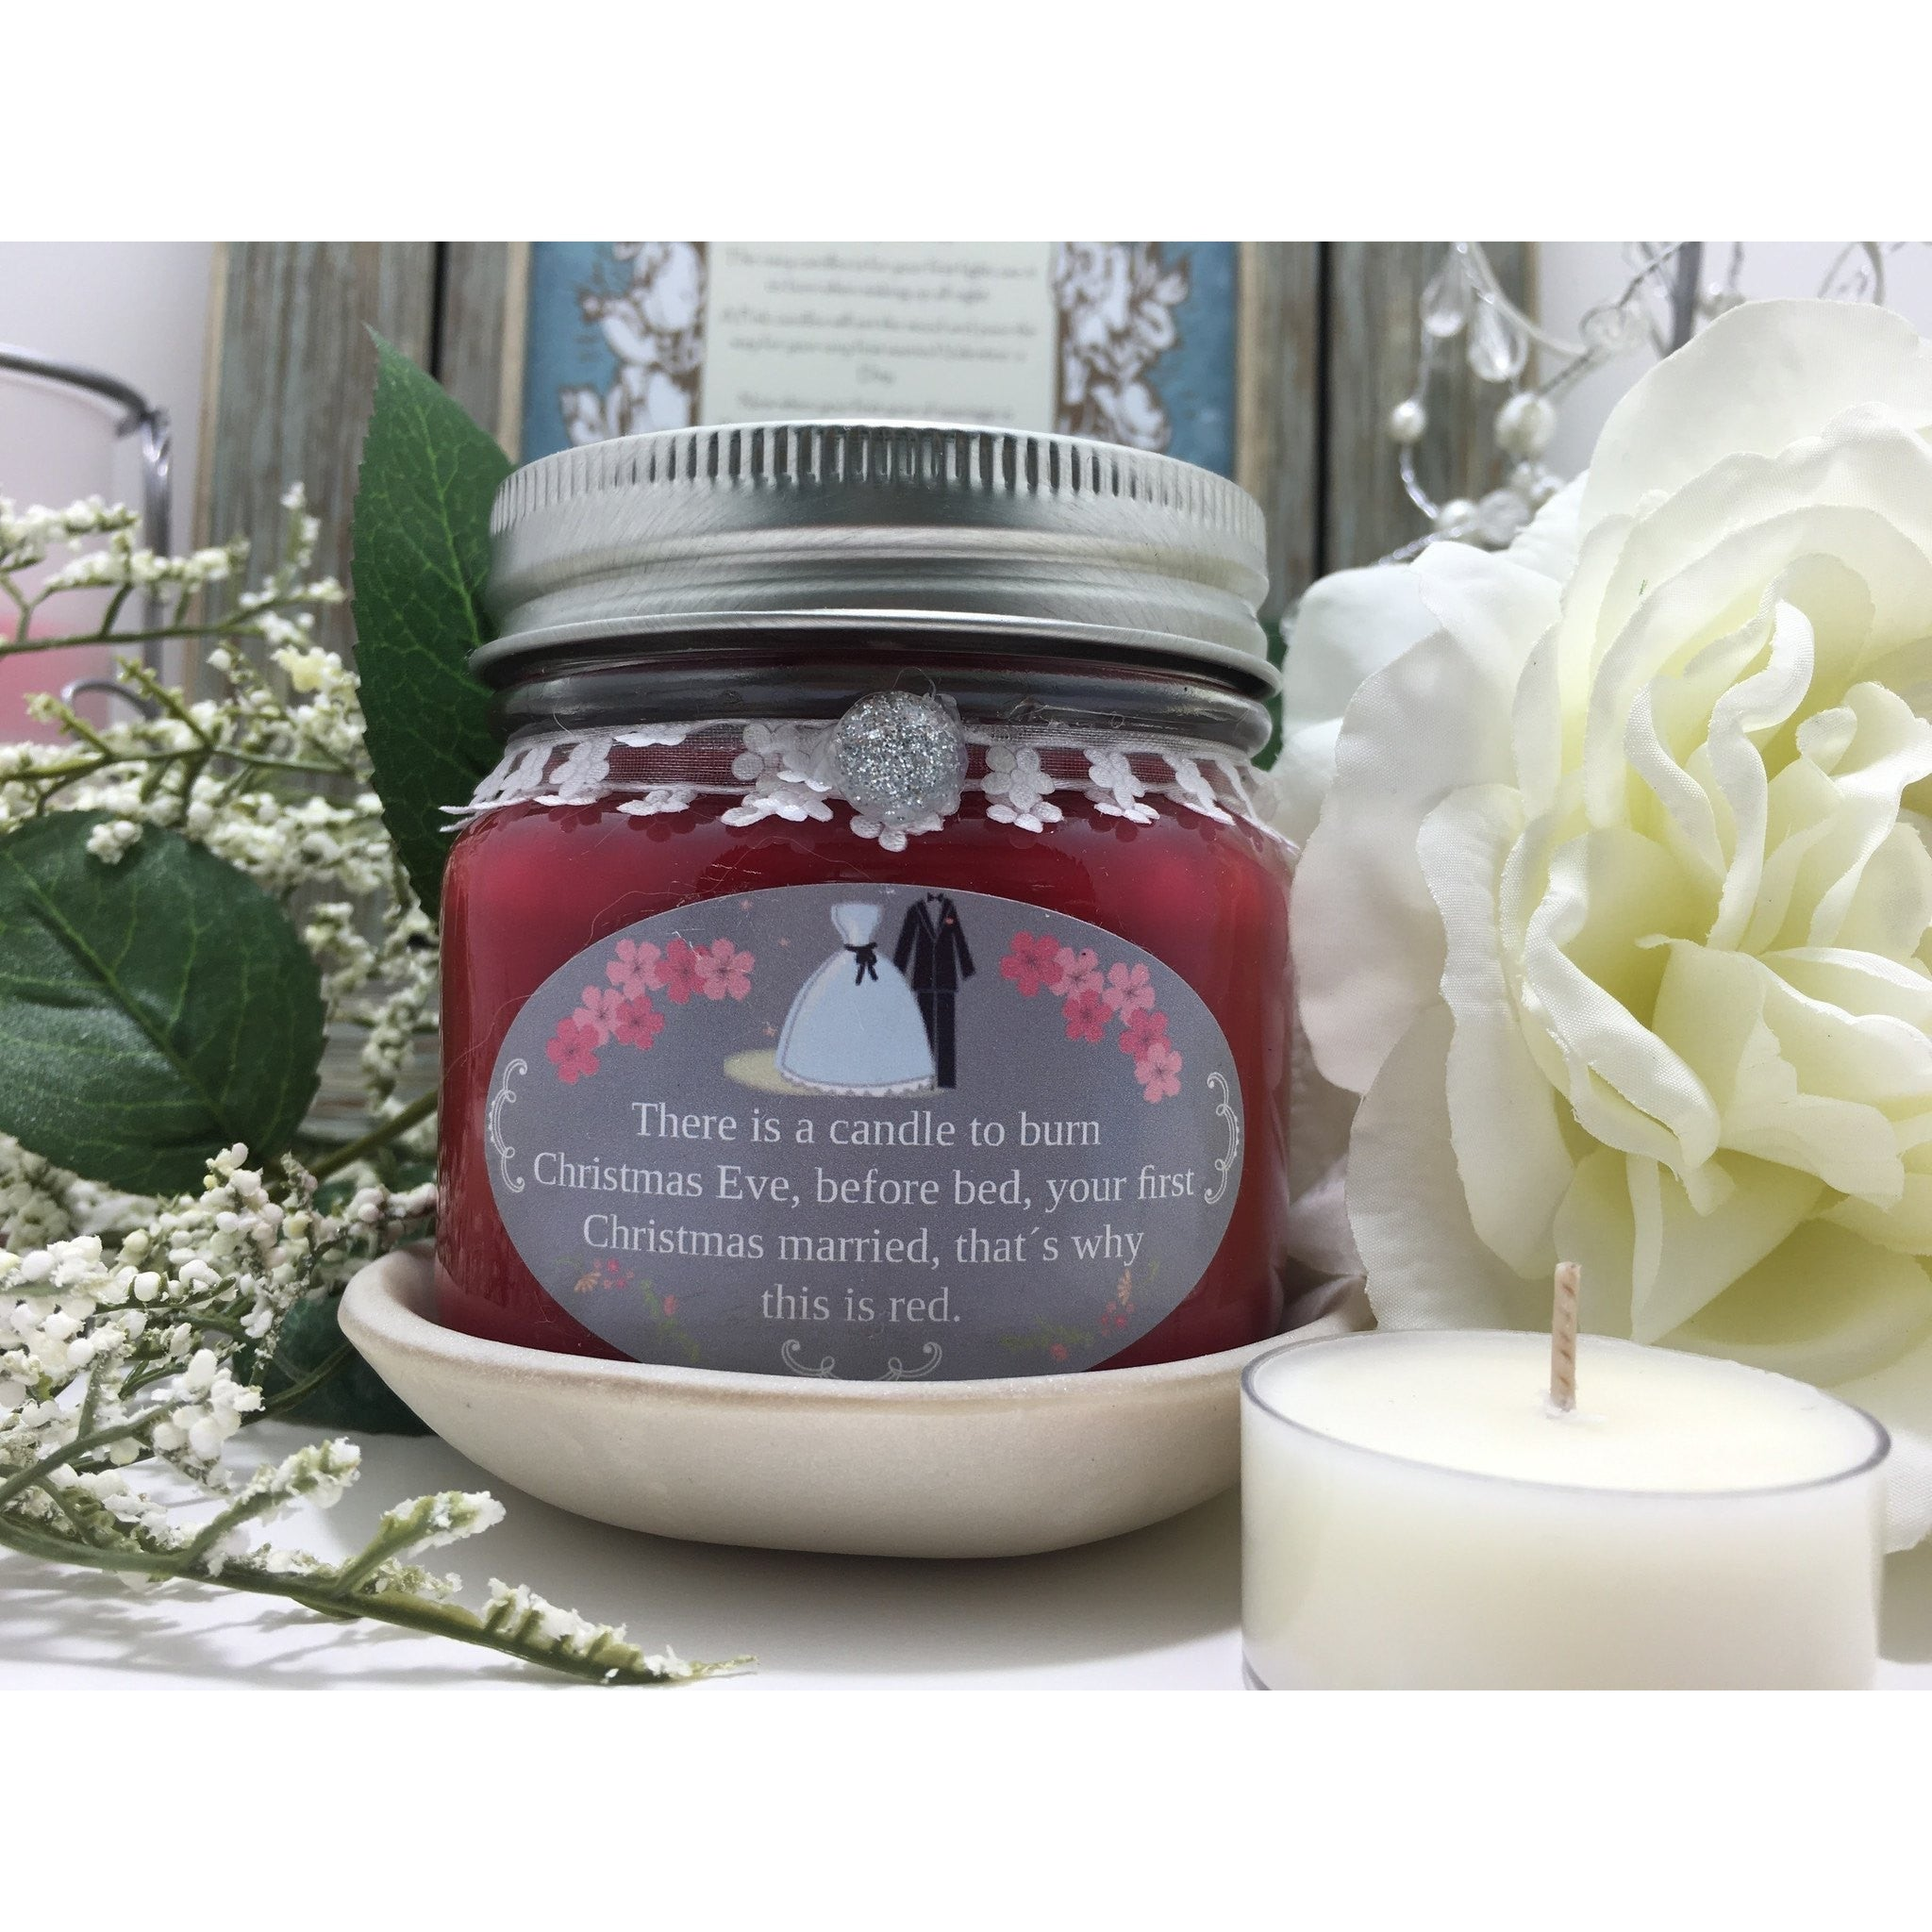 Wedding & Shower Party Natural Hand Poured Soy Candles & Melts -  - Bella-Mia Naturals All Natural Soy Candles & Lip Balms - 17